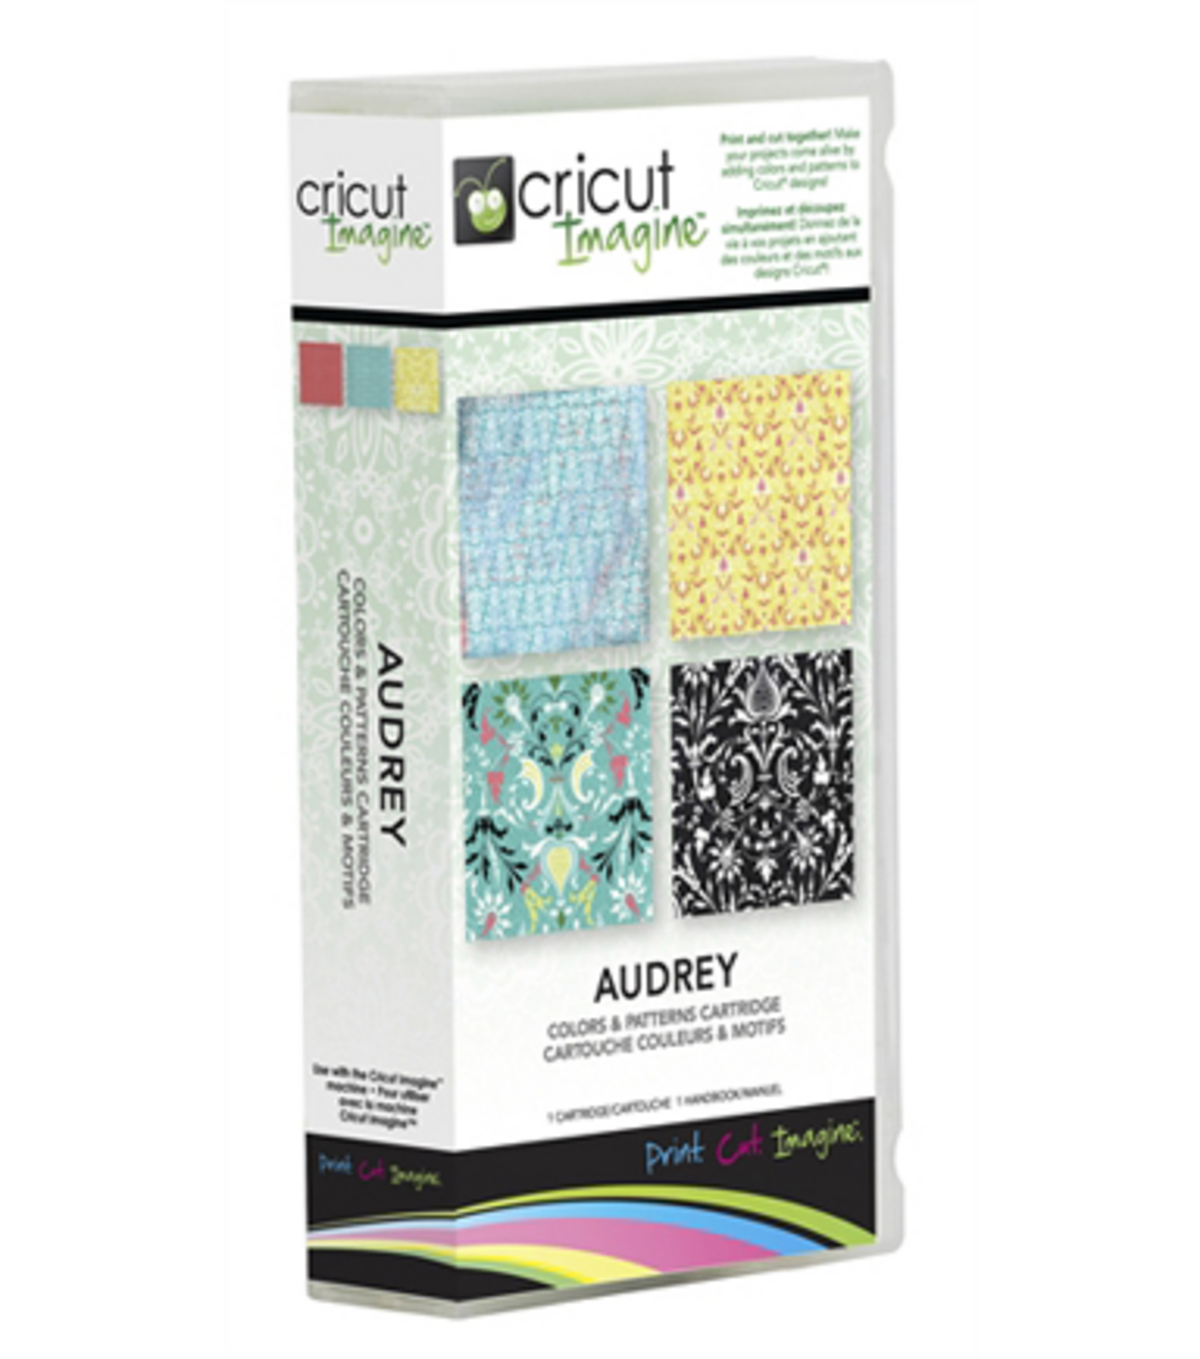 Cricut® Imagine Colors & Patterns Cartridge-Audrey